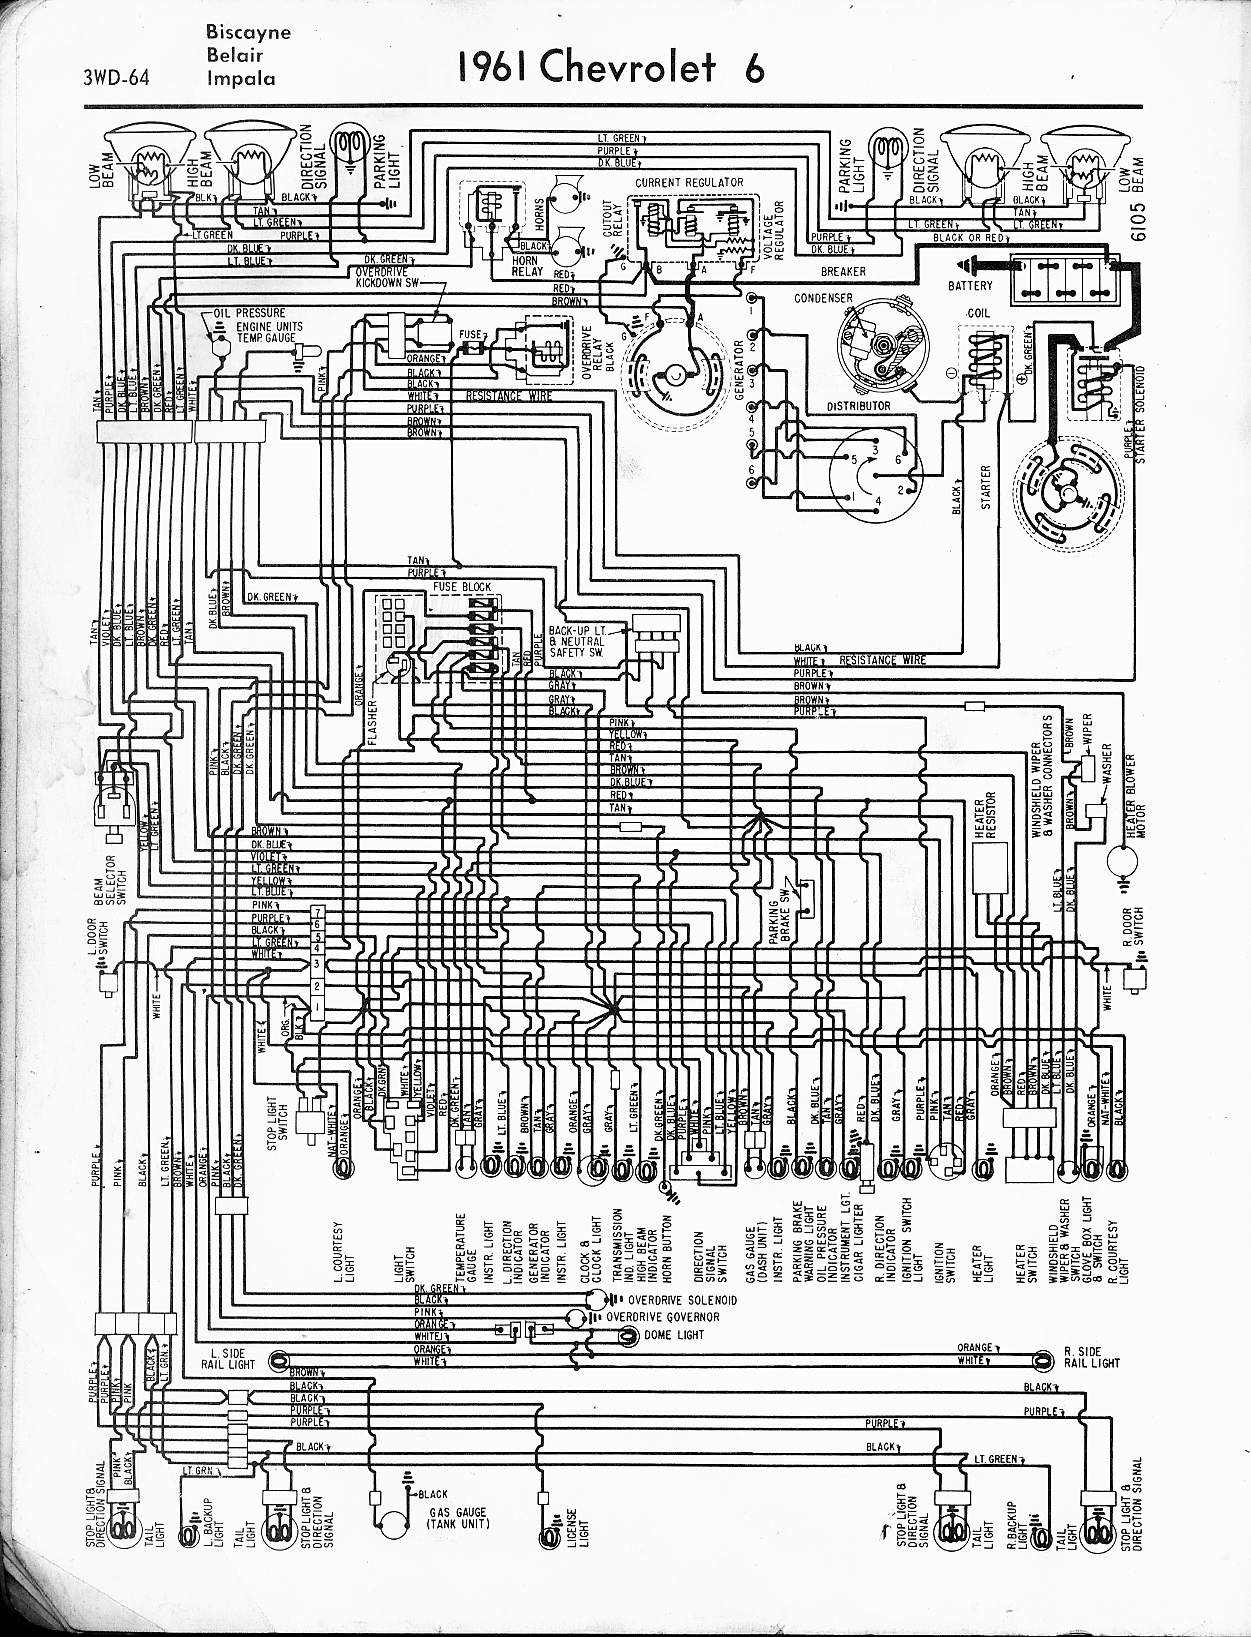 68 C10 Wiring Diagram Opinions About 1970 Pontiac Gto Schematic 1960 Corvette Starter Detailed Schematics Rh Mrskindsclass Com Fuse 69